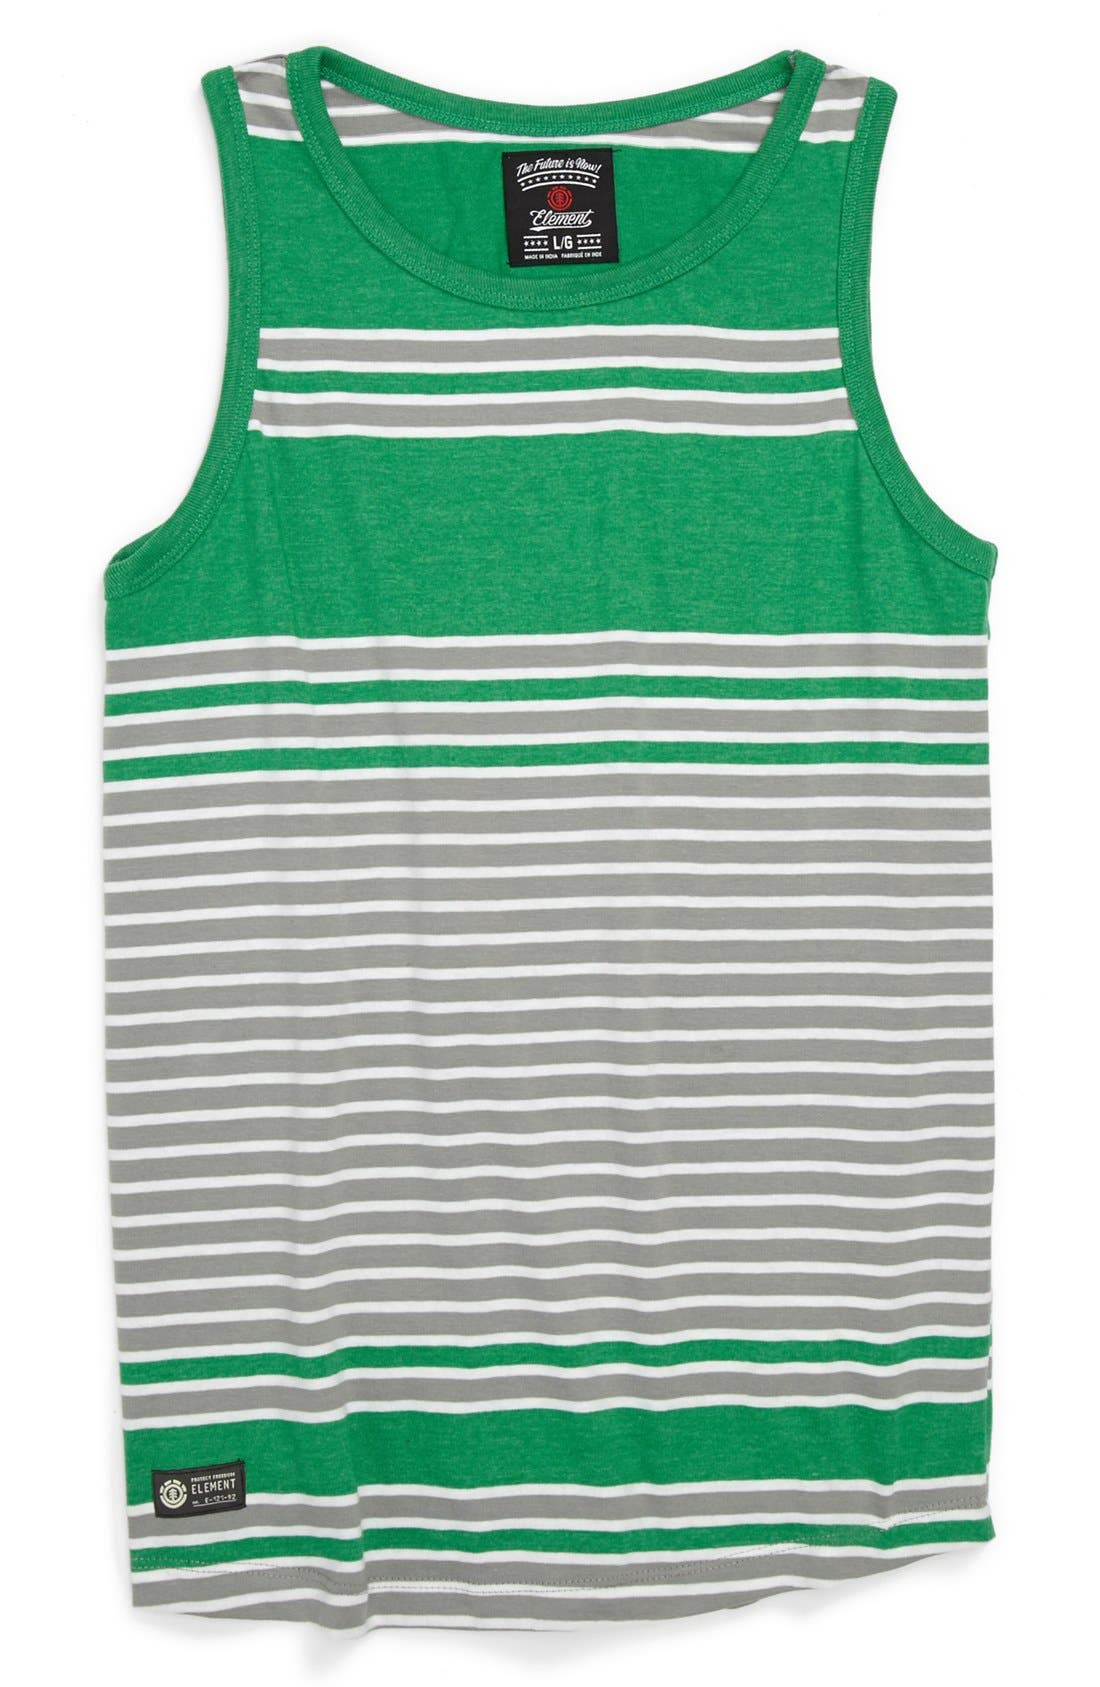 Alternate Image 1 Selected - Element 'Holmby' Tank Top (Big Boys)